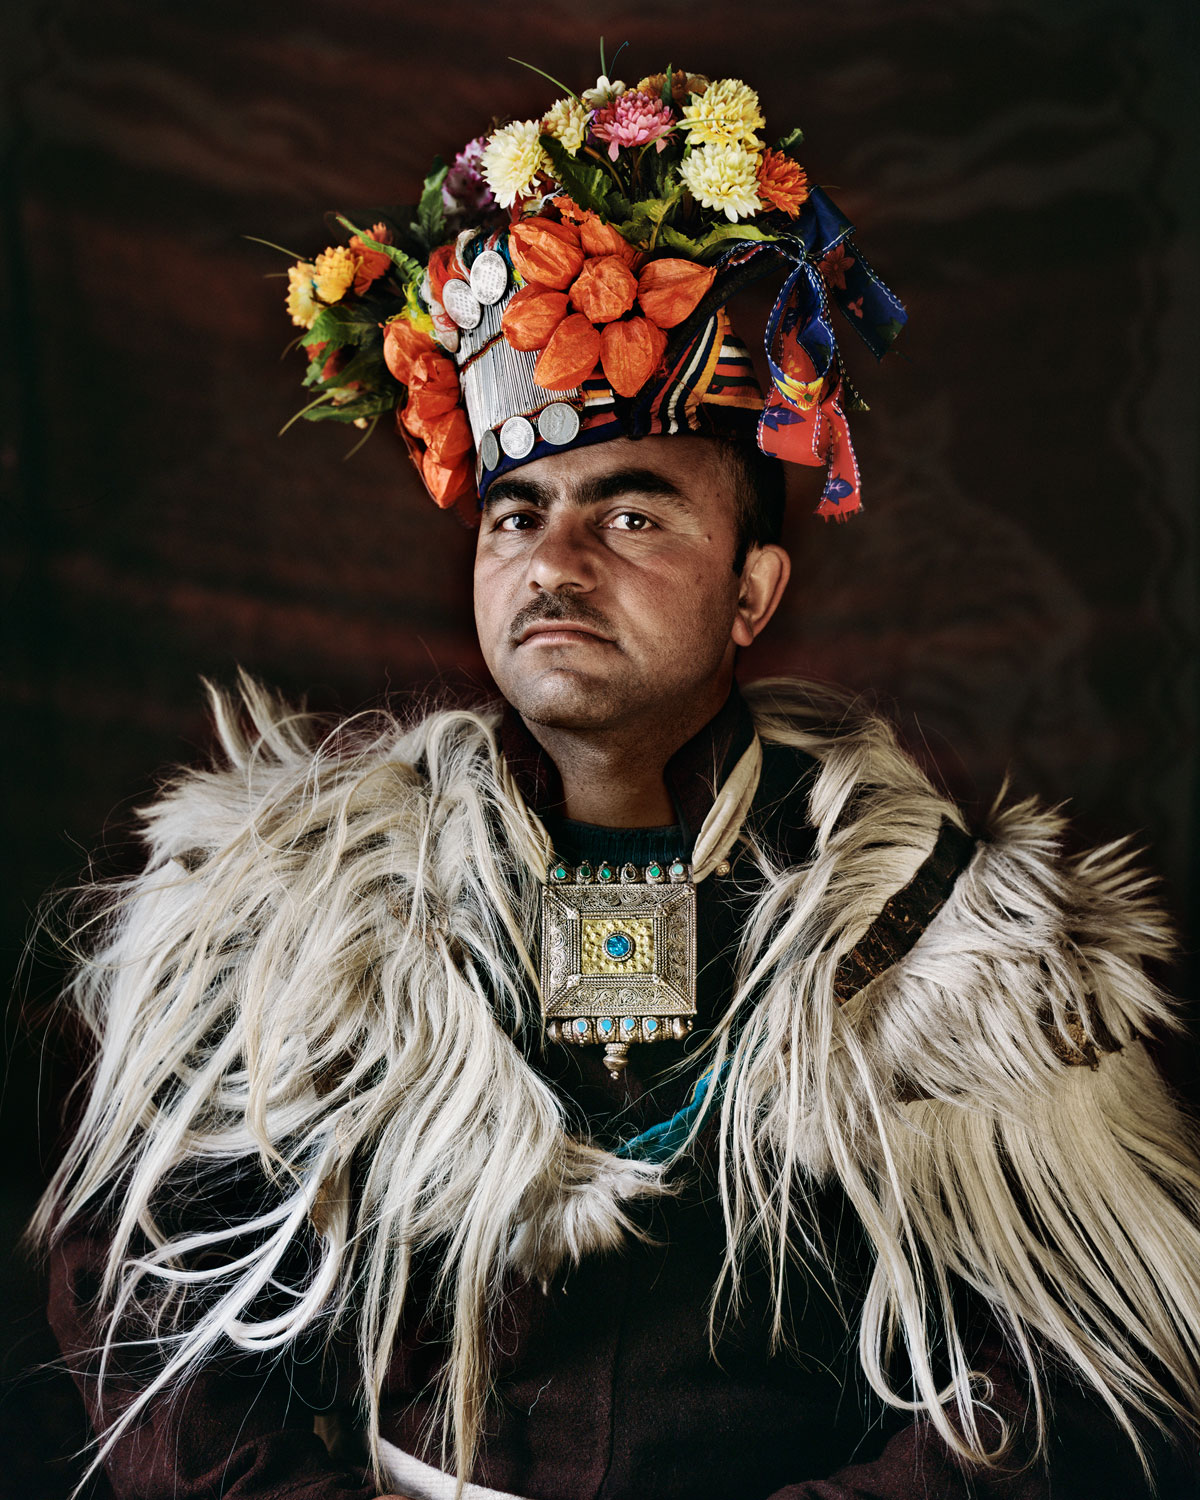 A male member of the tribe in traditional wear.